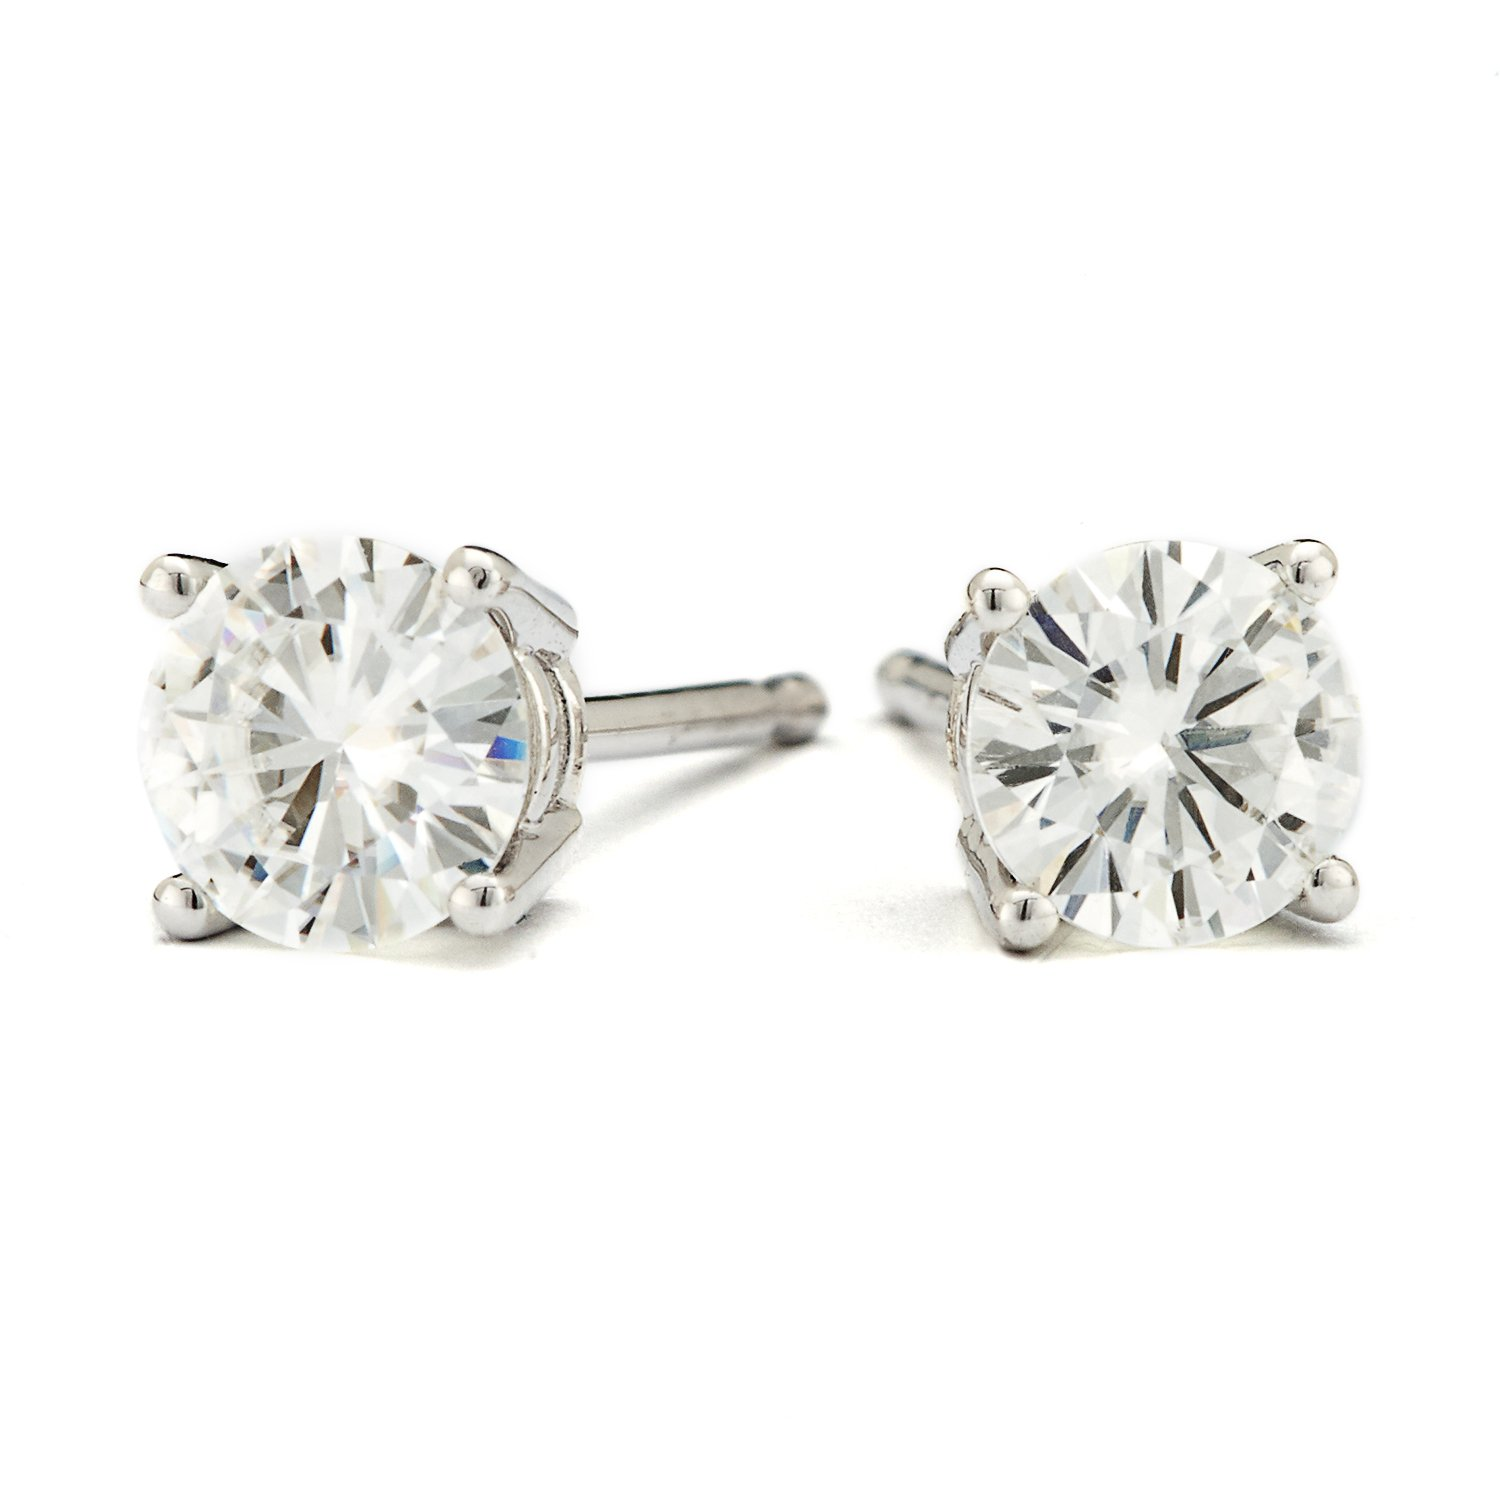 4.5mm Round Brilliant Cut Moissanite Sterling Silver Stud Earrings, 0.66cttw DEW By Charles & Colvard by Charles & Colvard (Image #2)